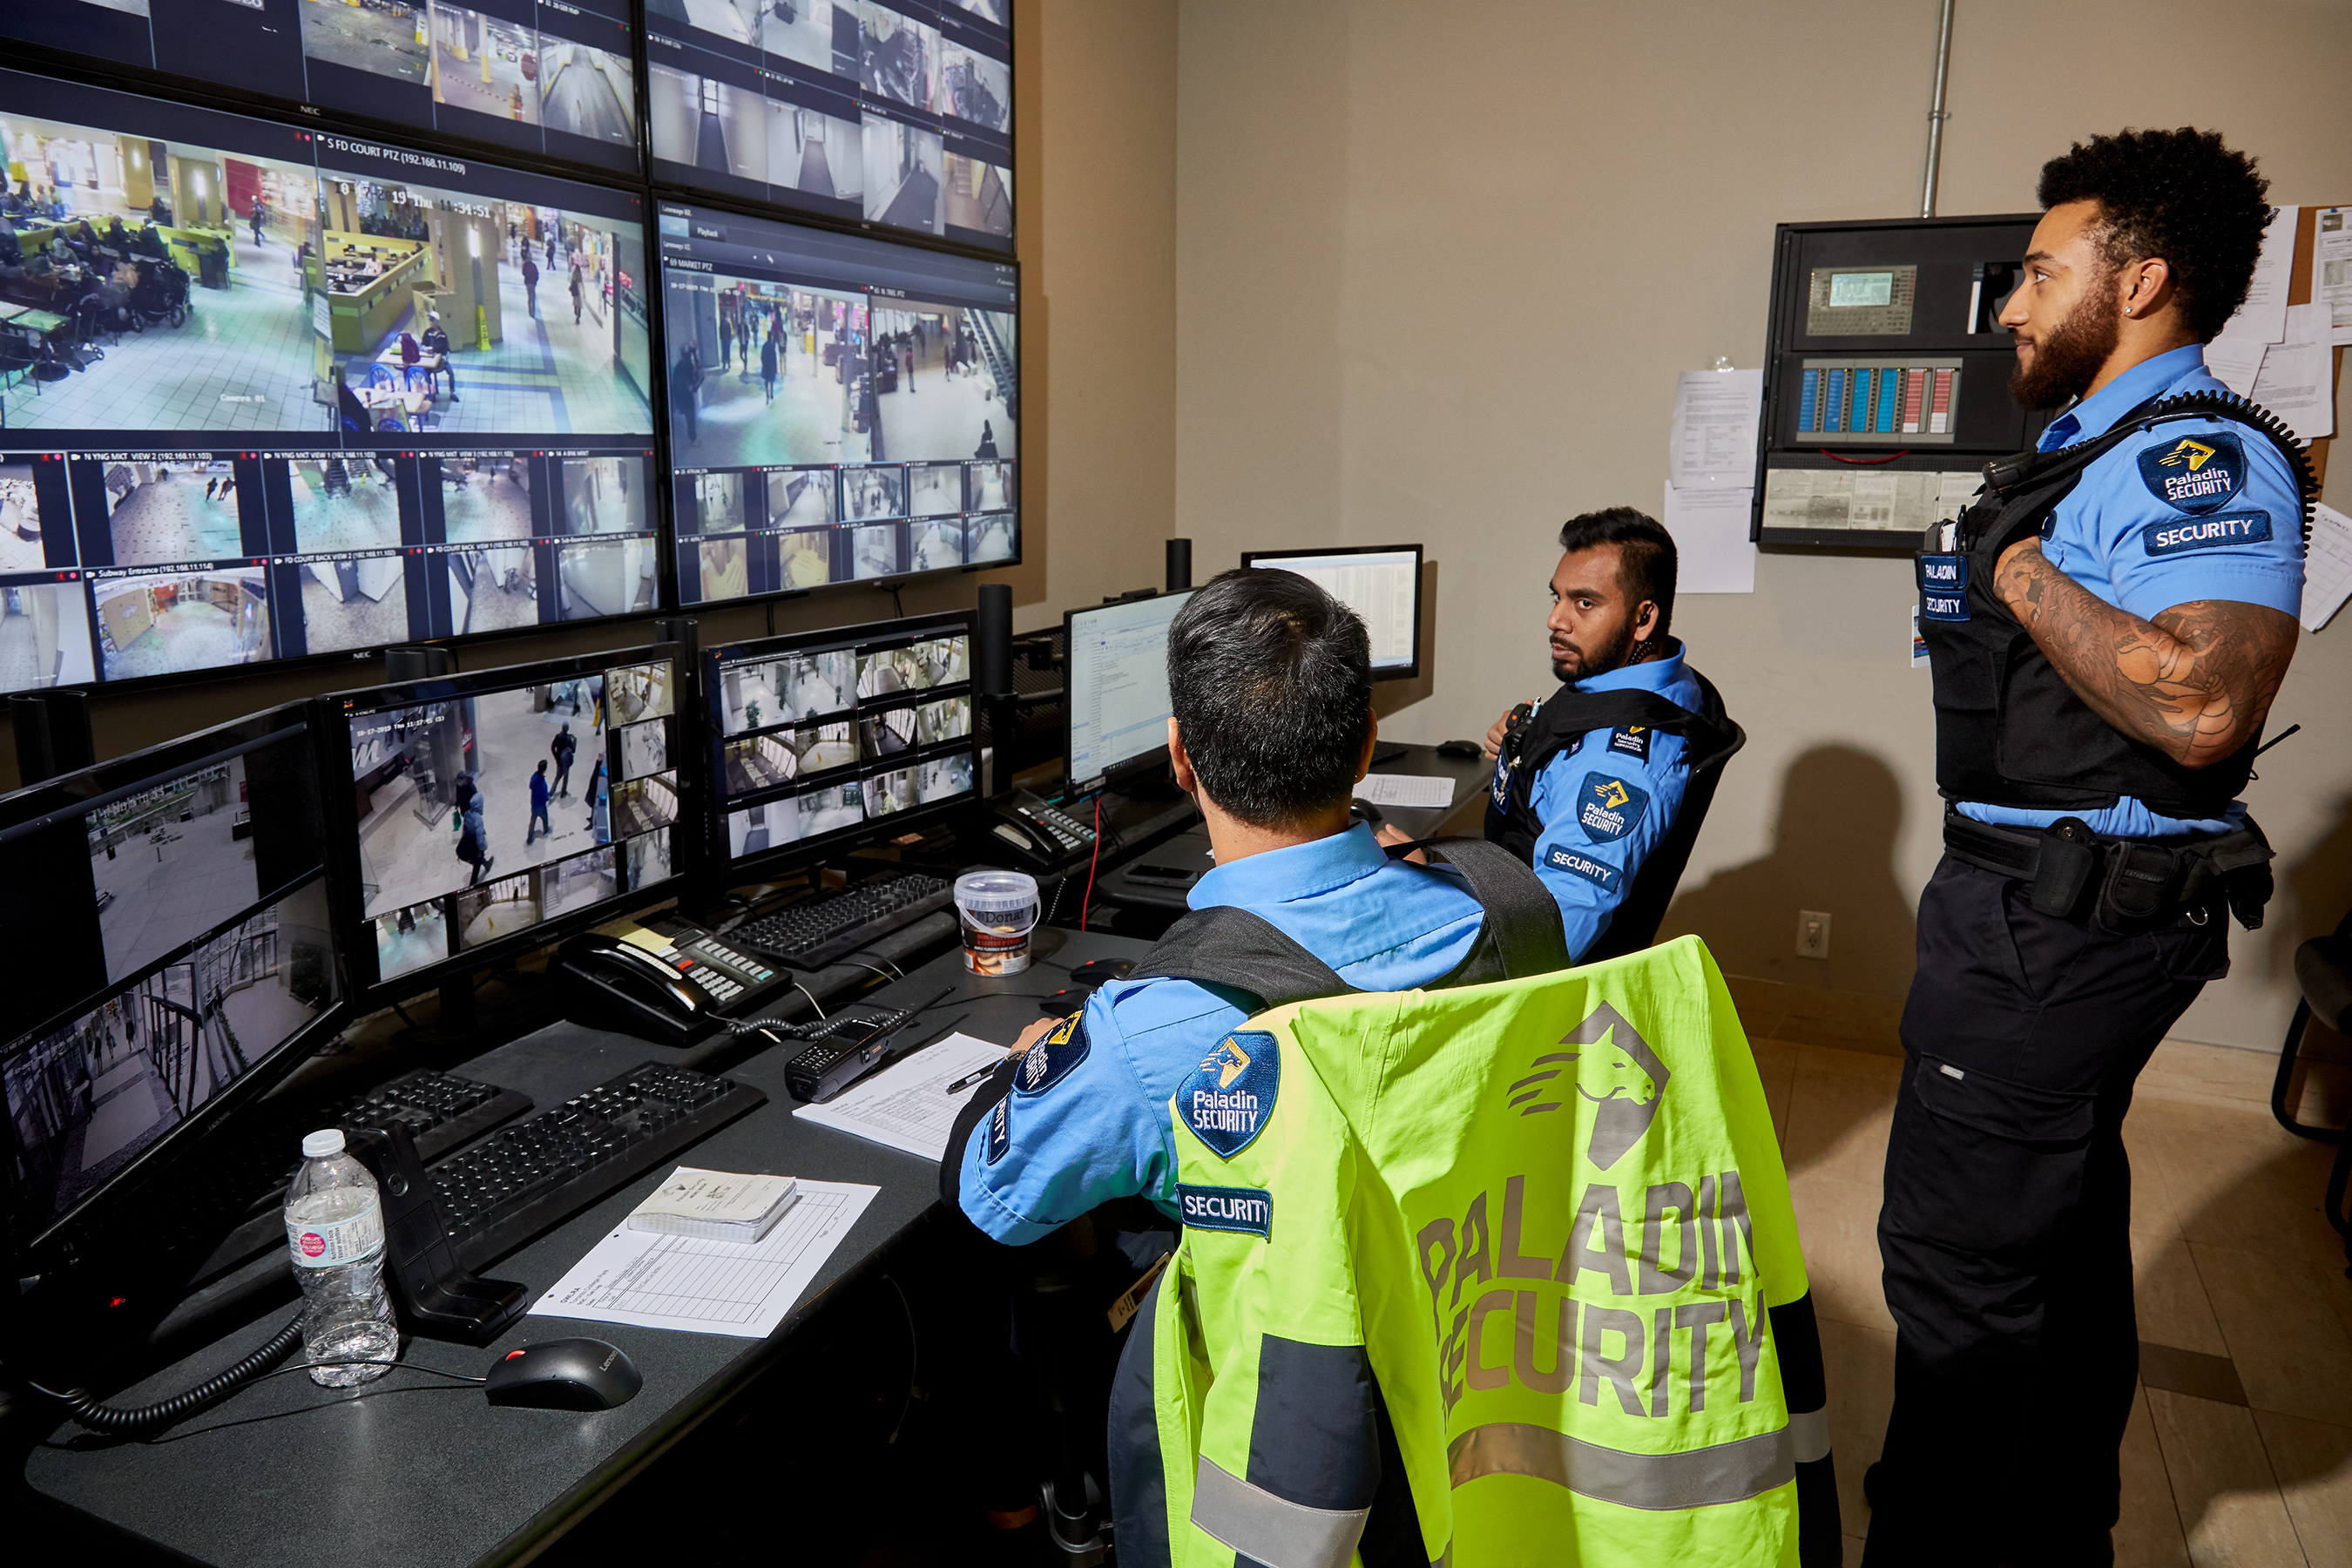 How Paladin Security Group became Canada's largest full-service security firm